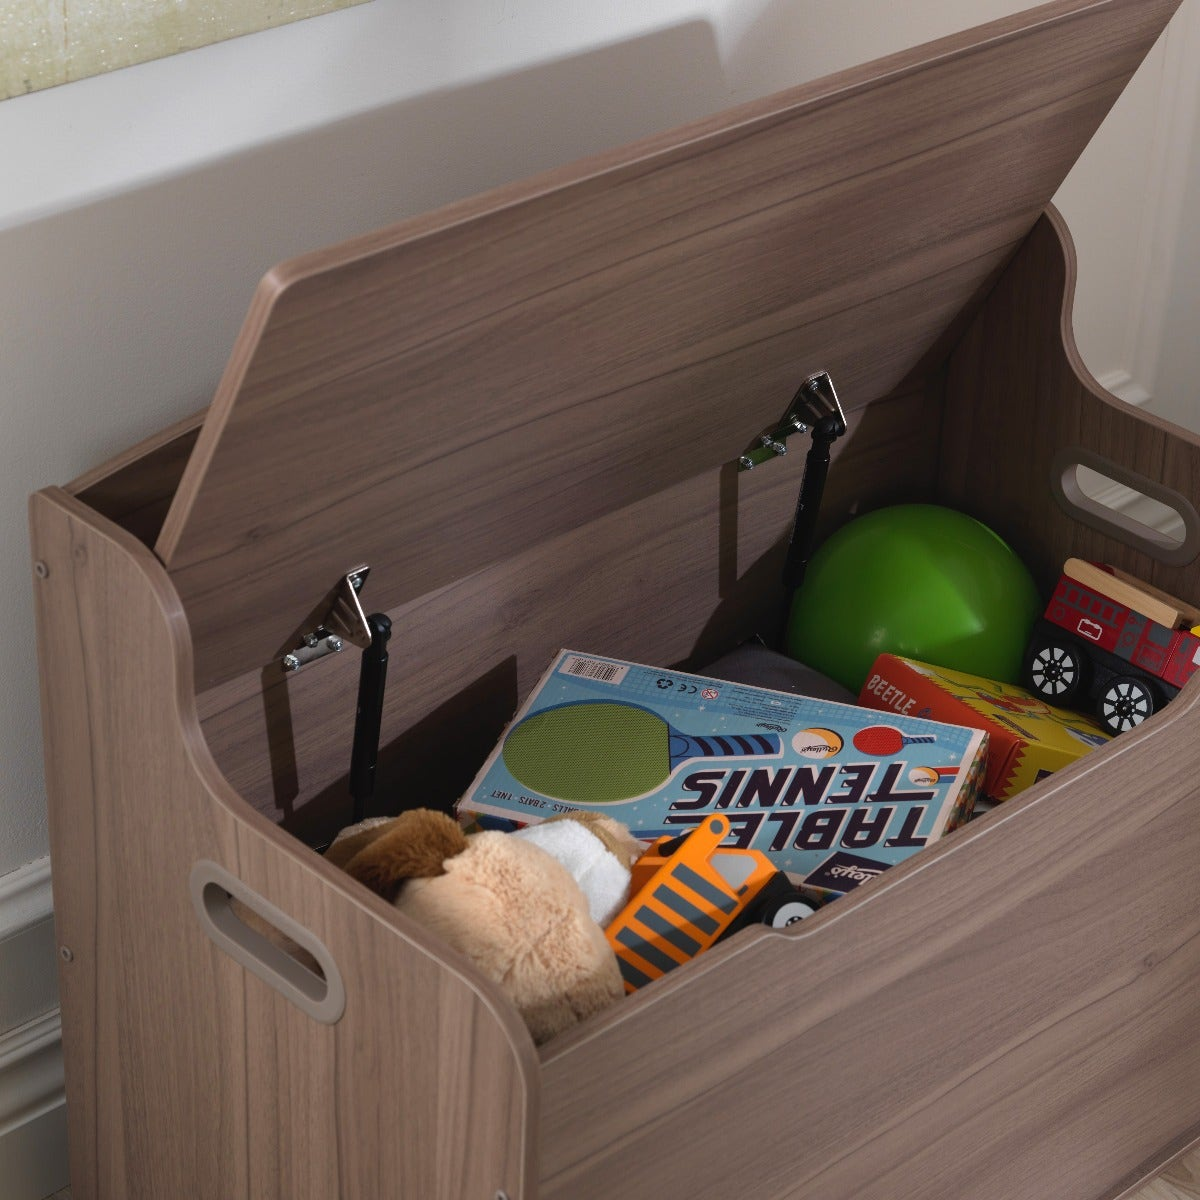 Safety hinge keeps lid from dropping and pinching little fingers